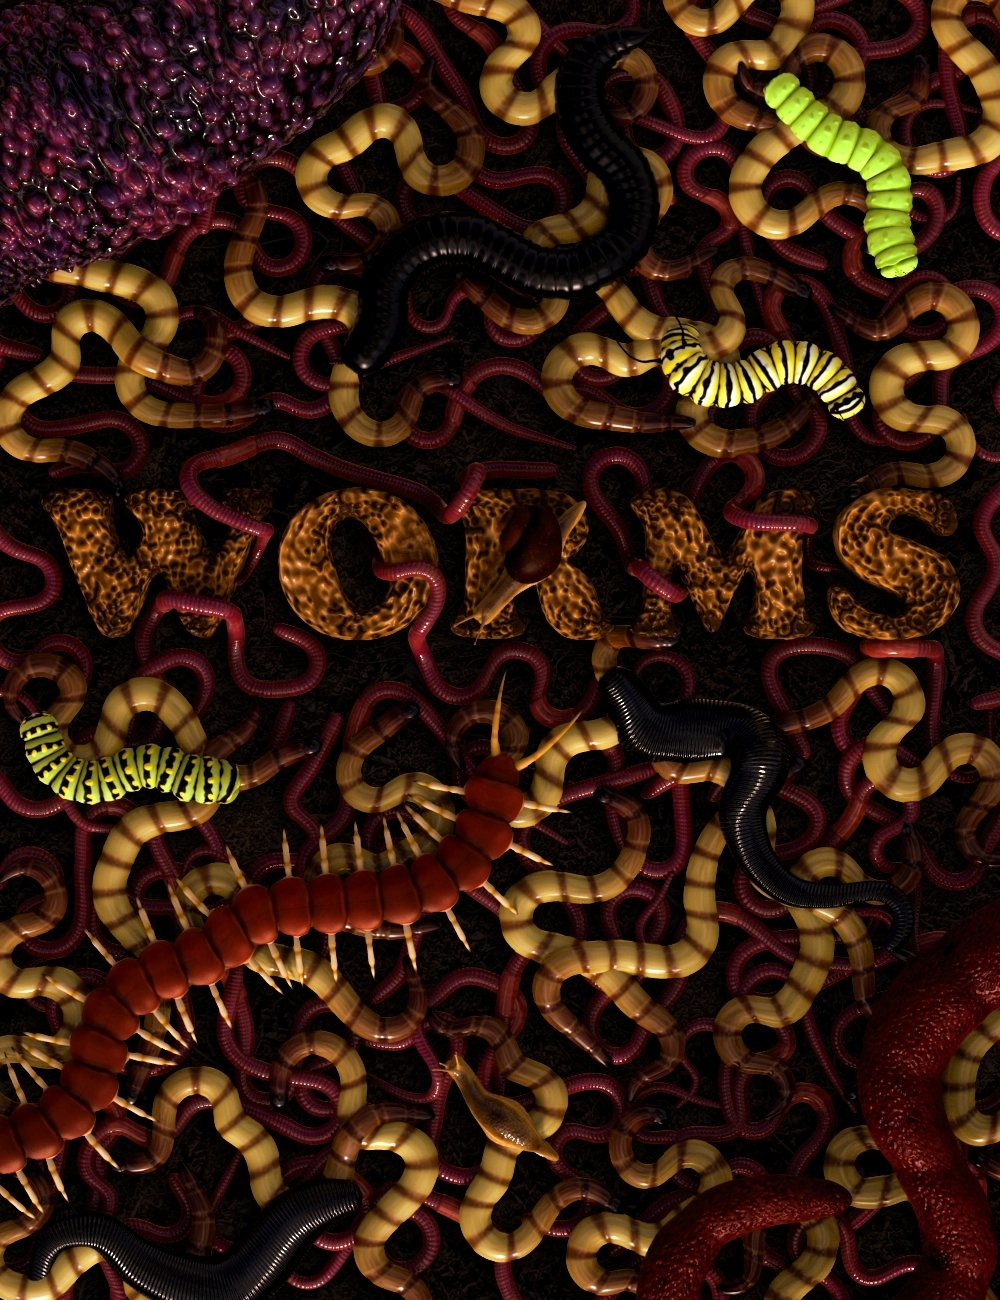 Worms by: Mechasar, 3D Models by Daz 3D